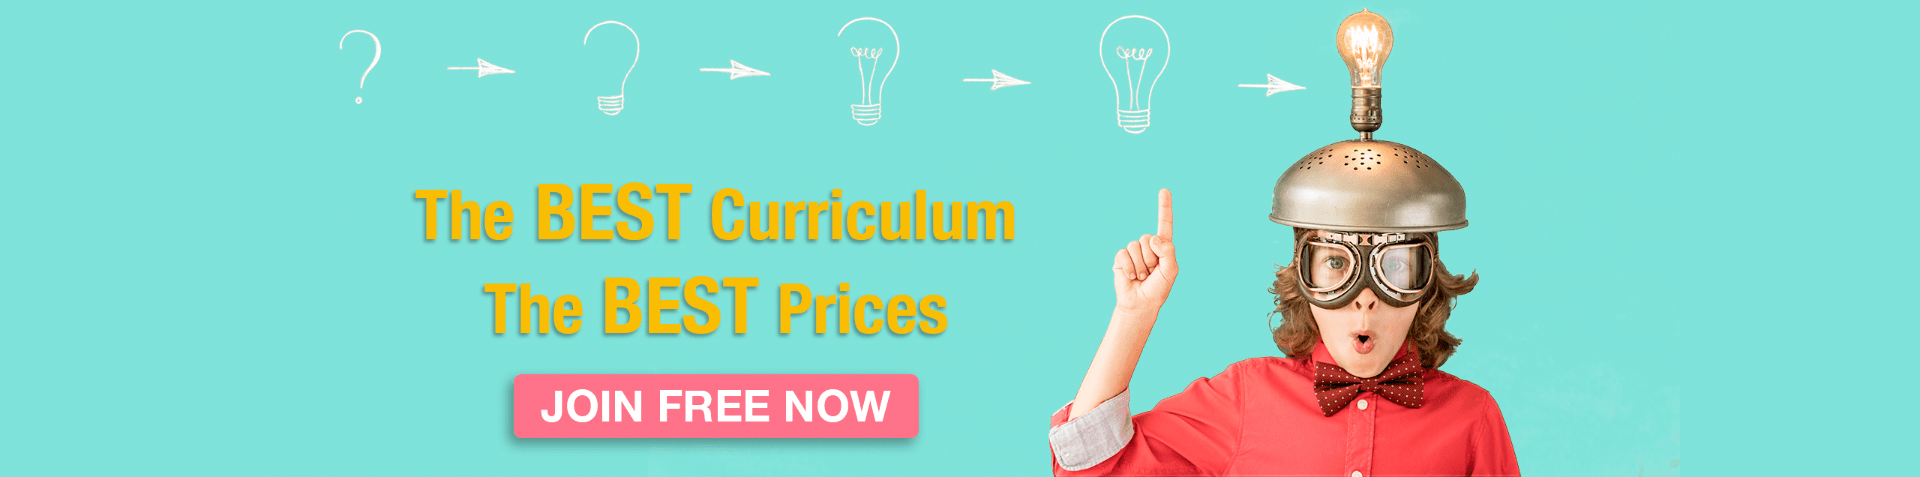 The best curriculum, the best prices!